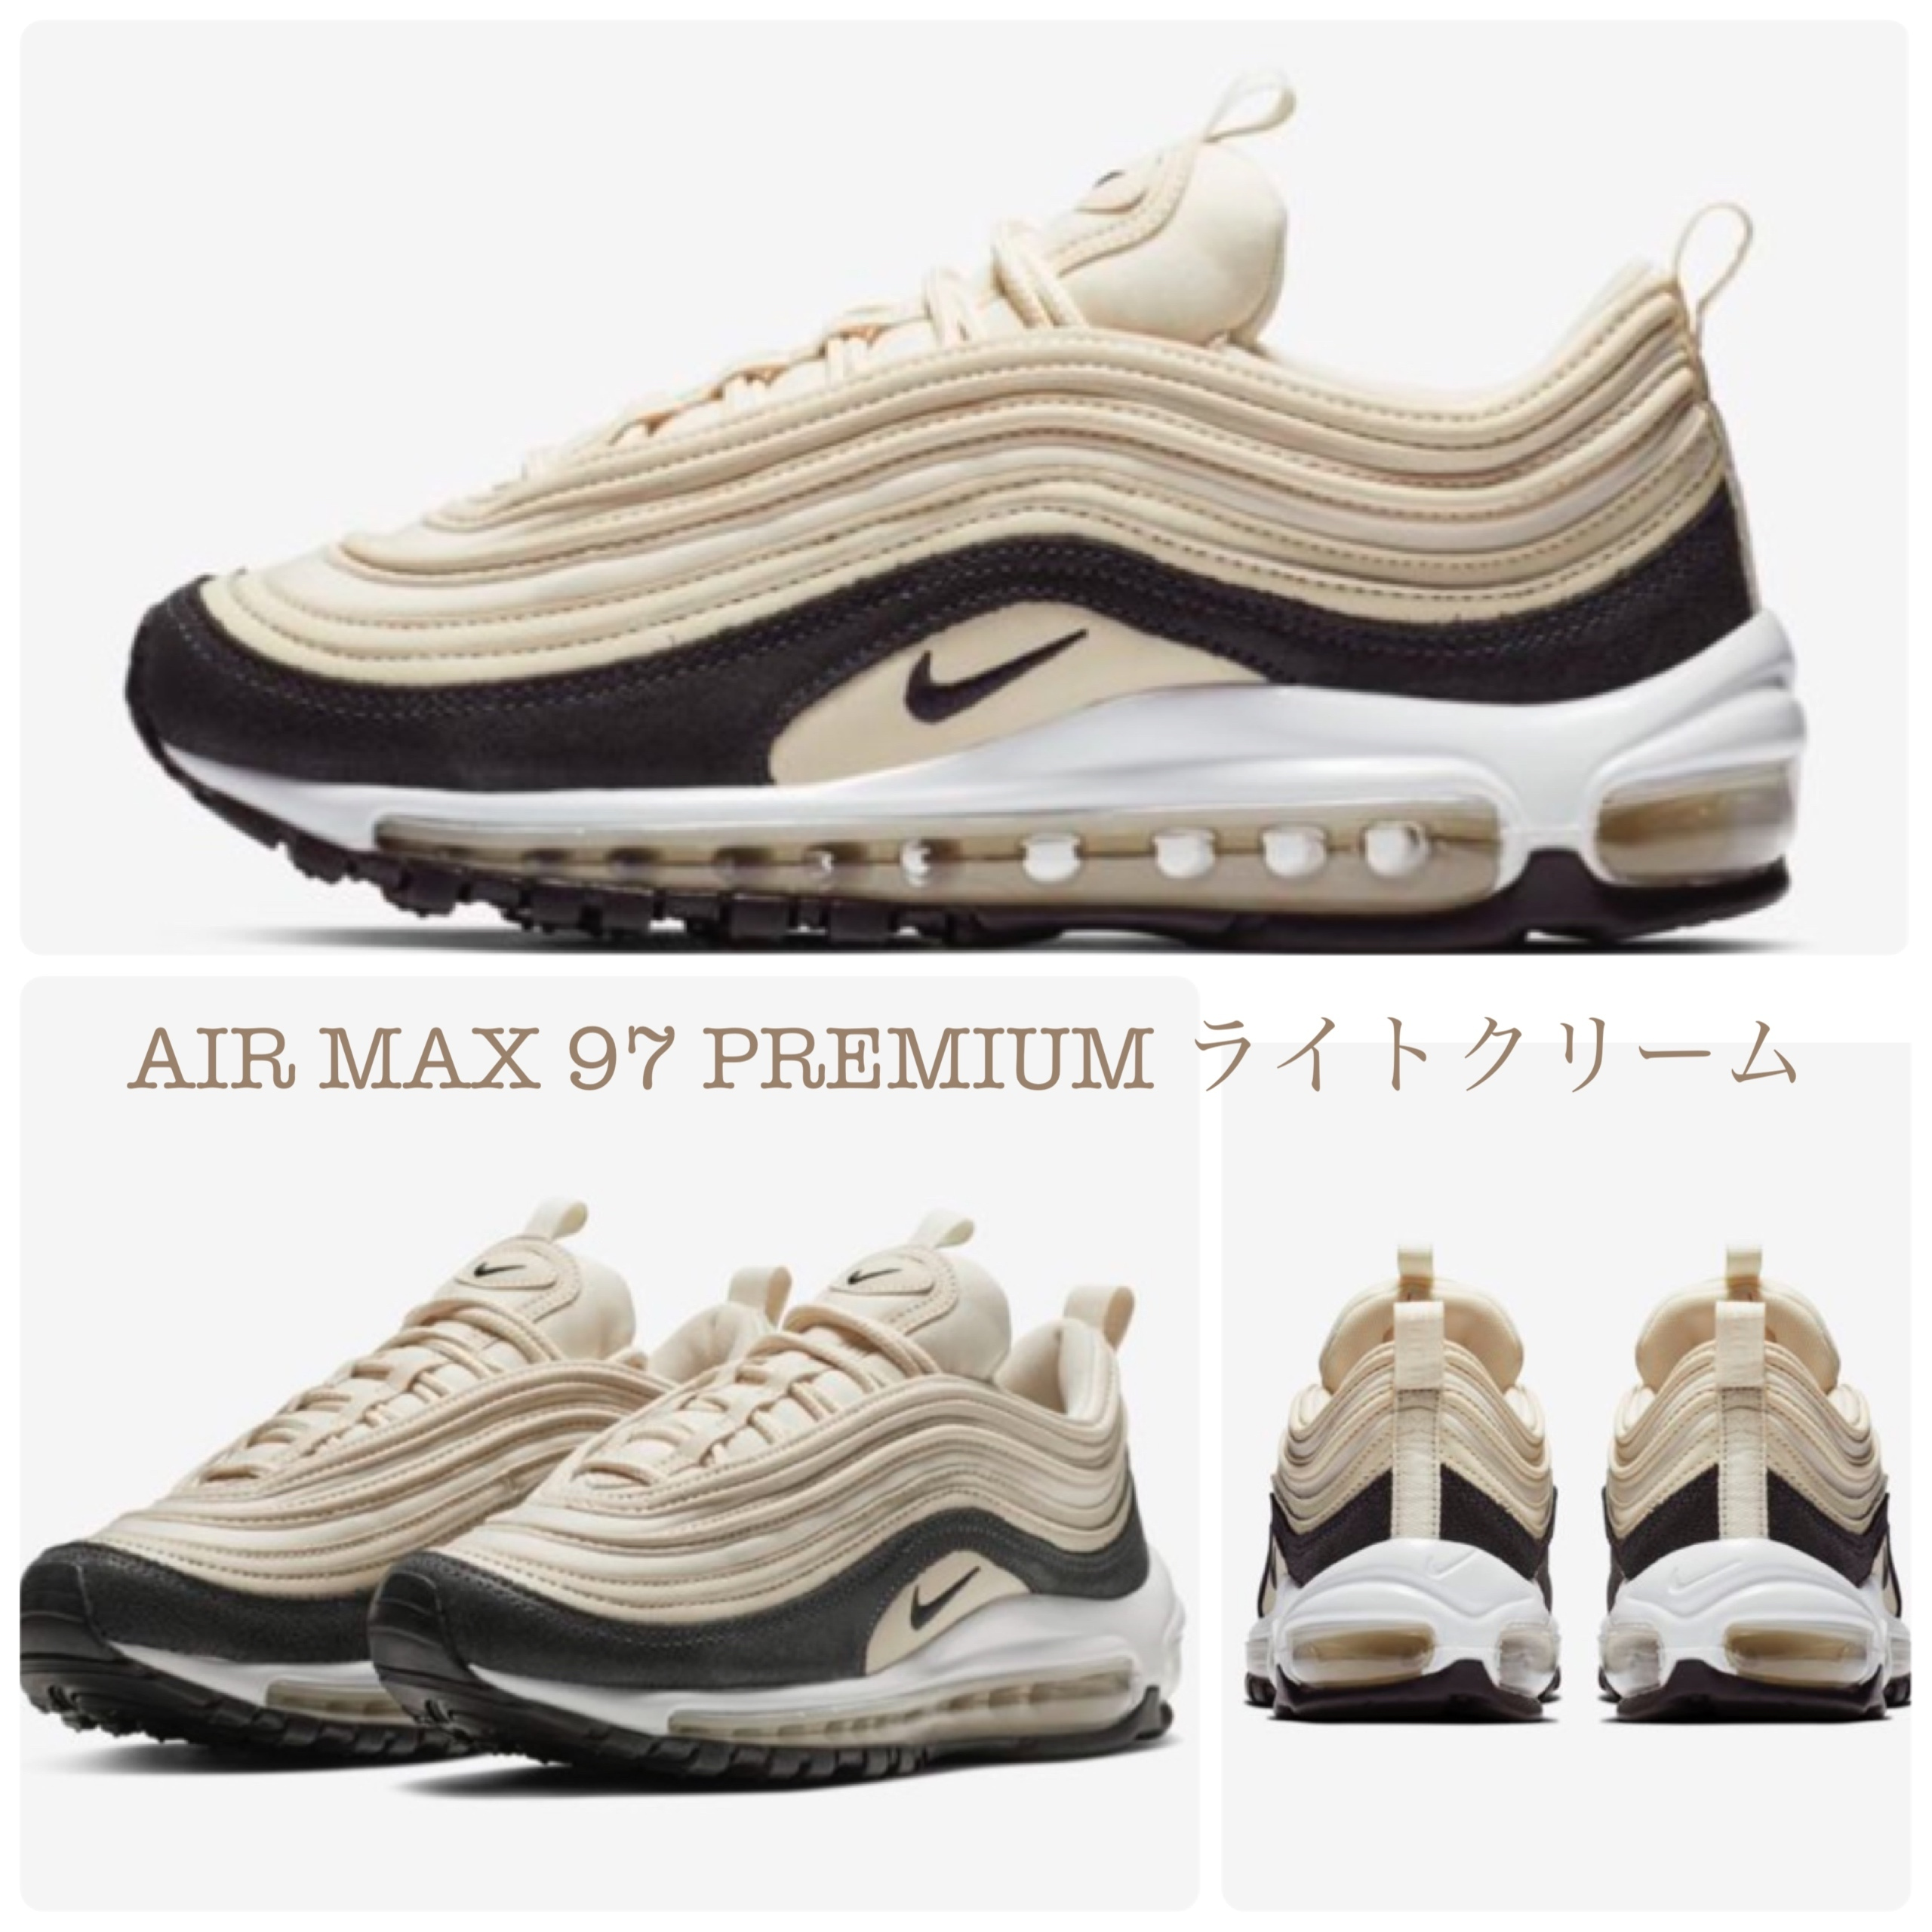 best service 02a25 5a2fc Nike AIR MAX 97 2018-19AW Plain Leather Low-Top Sneakers (917646-202)